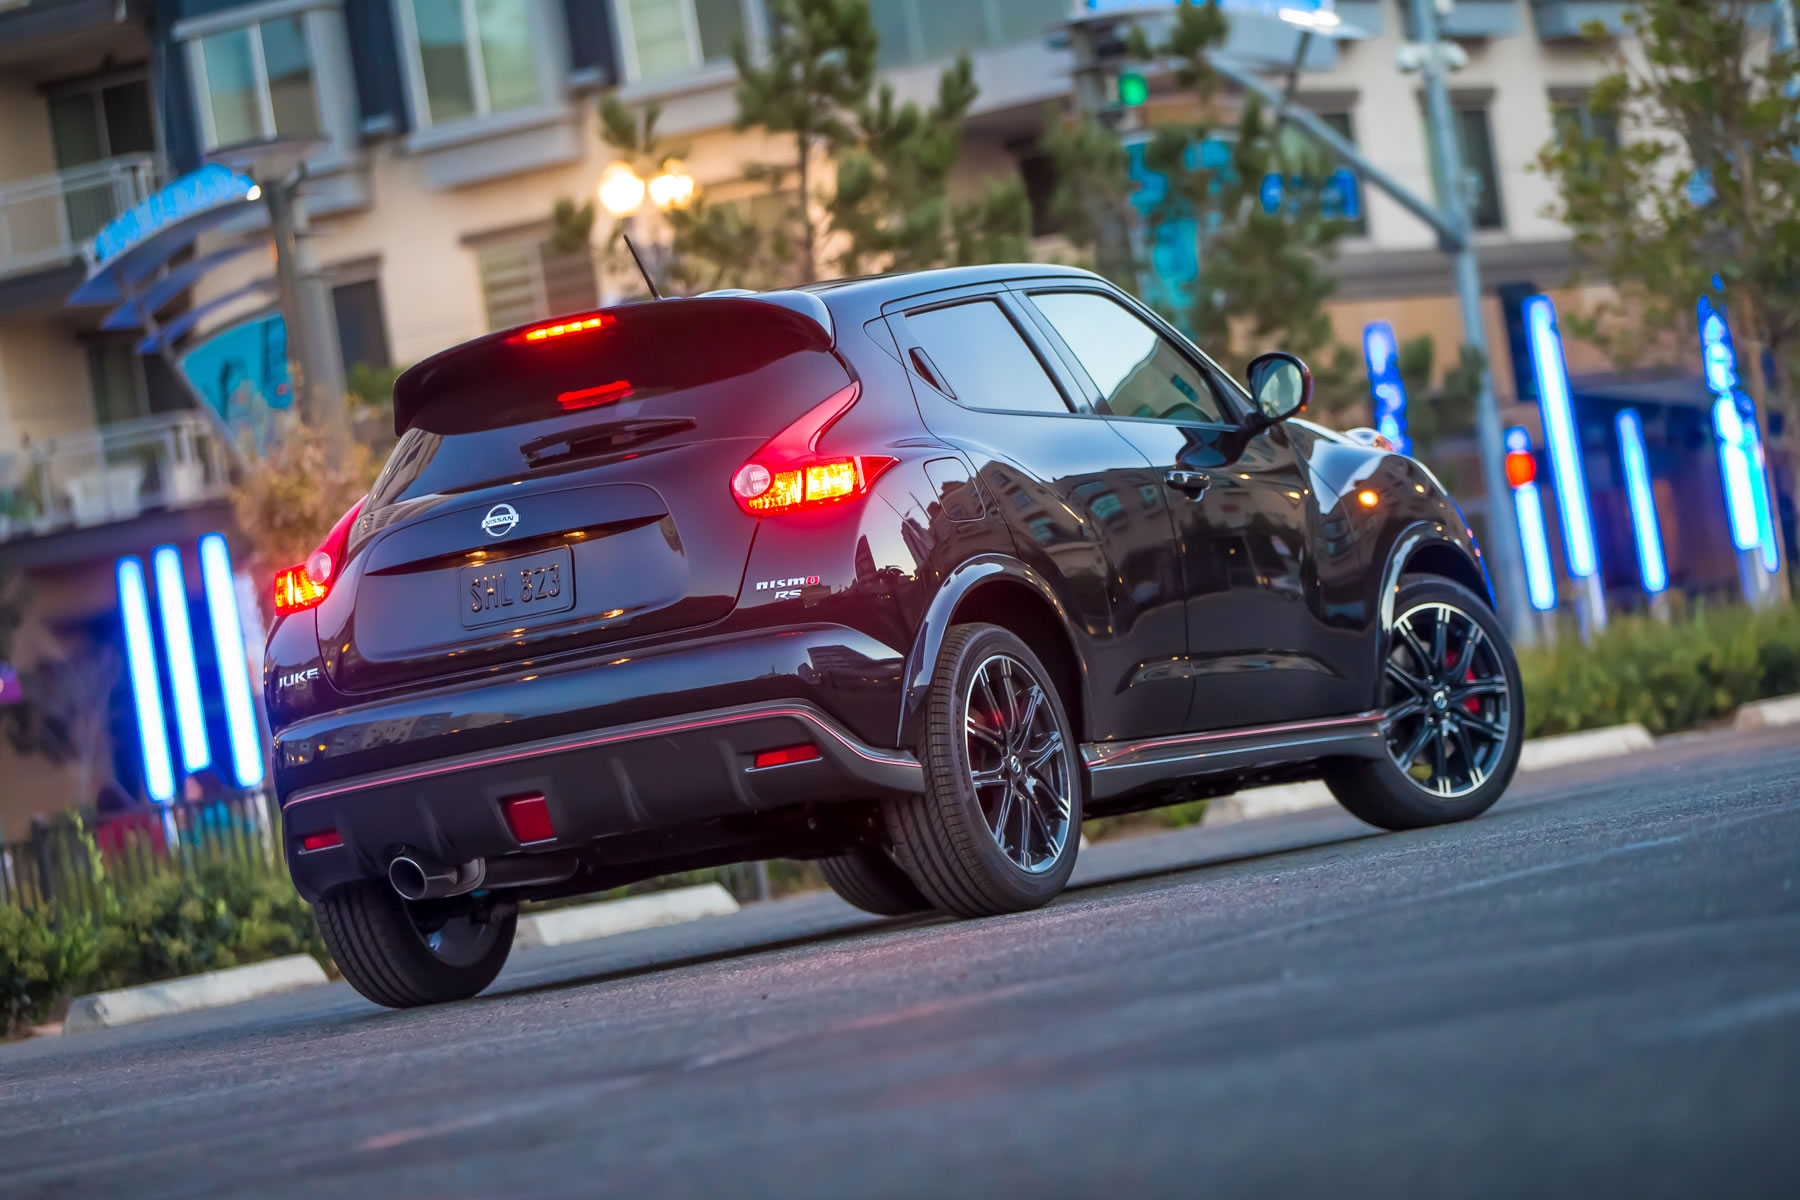 2014 Nissan Juke NISMO RS rear photo taillights size 1800 x 1200